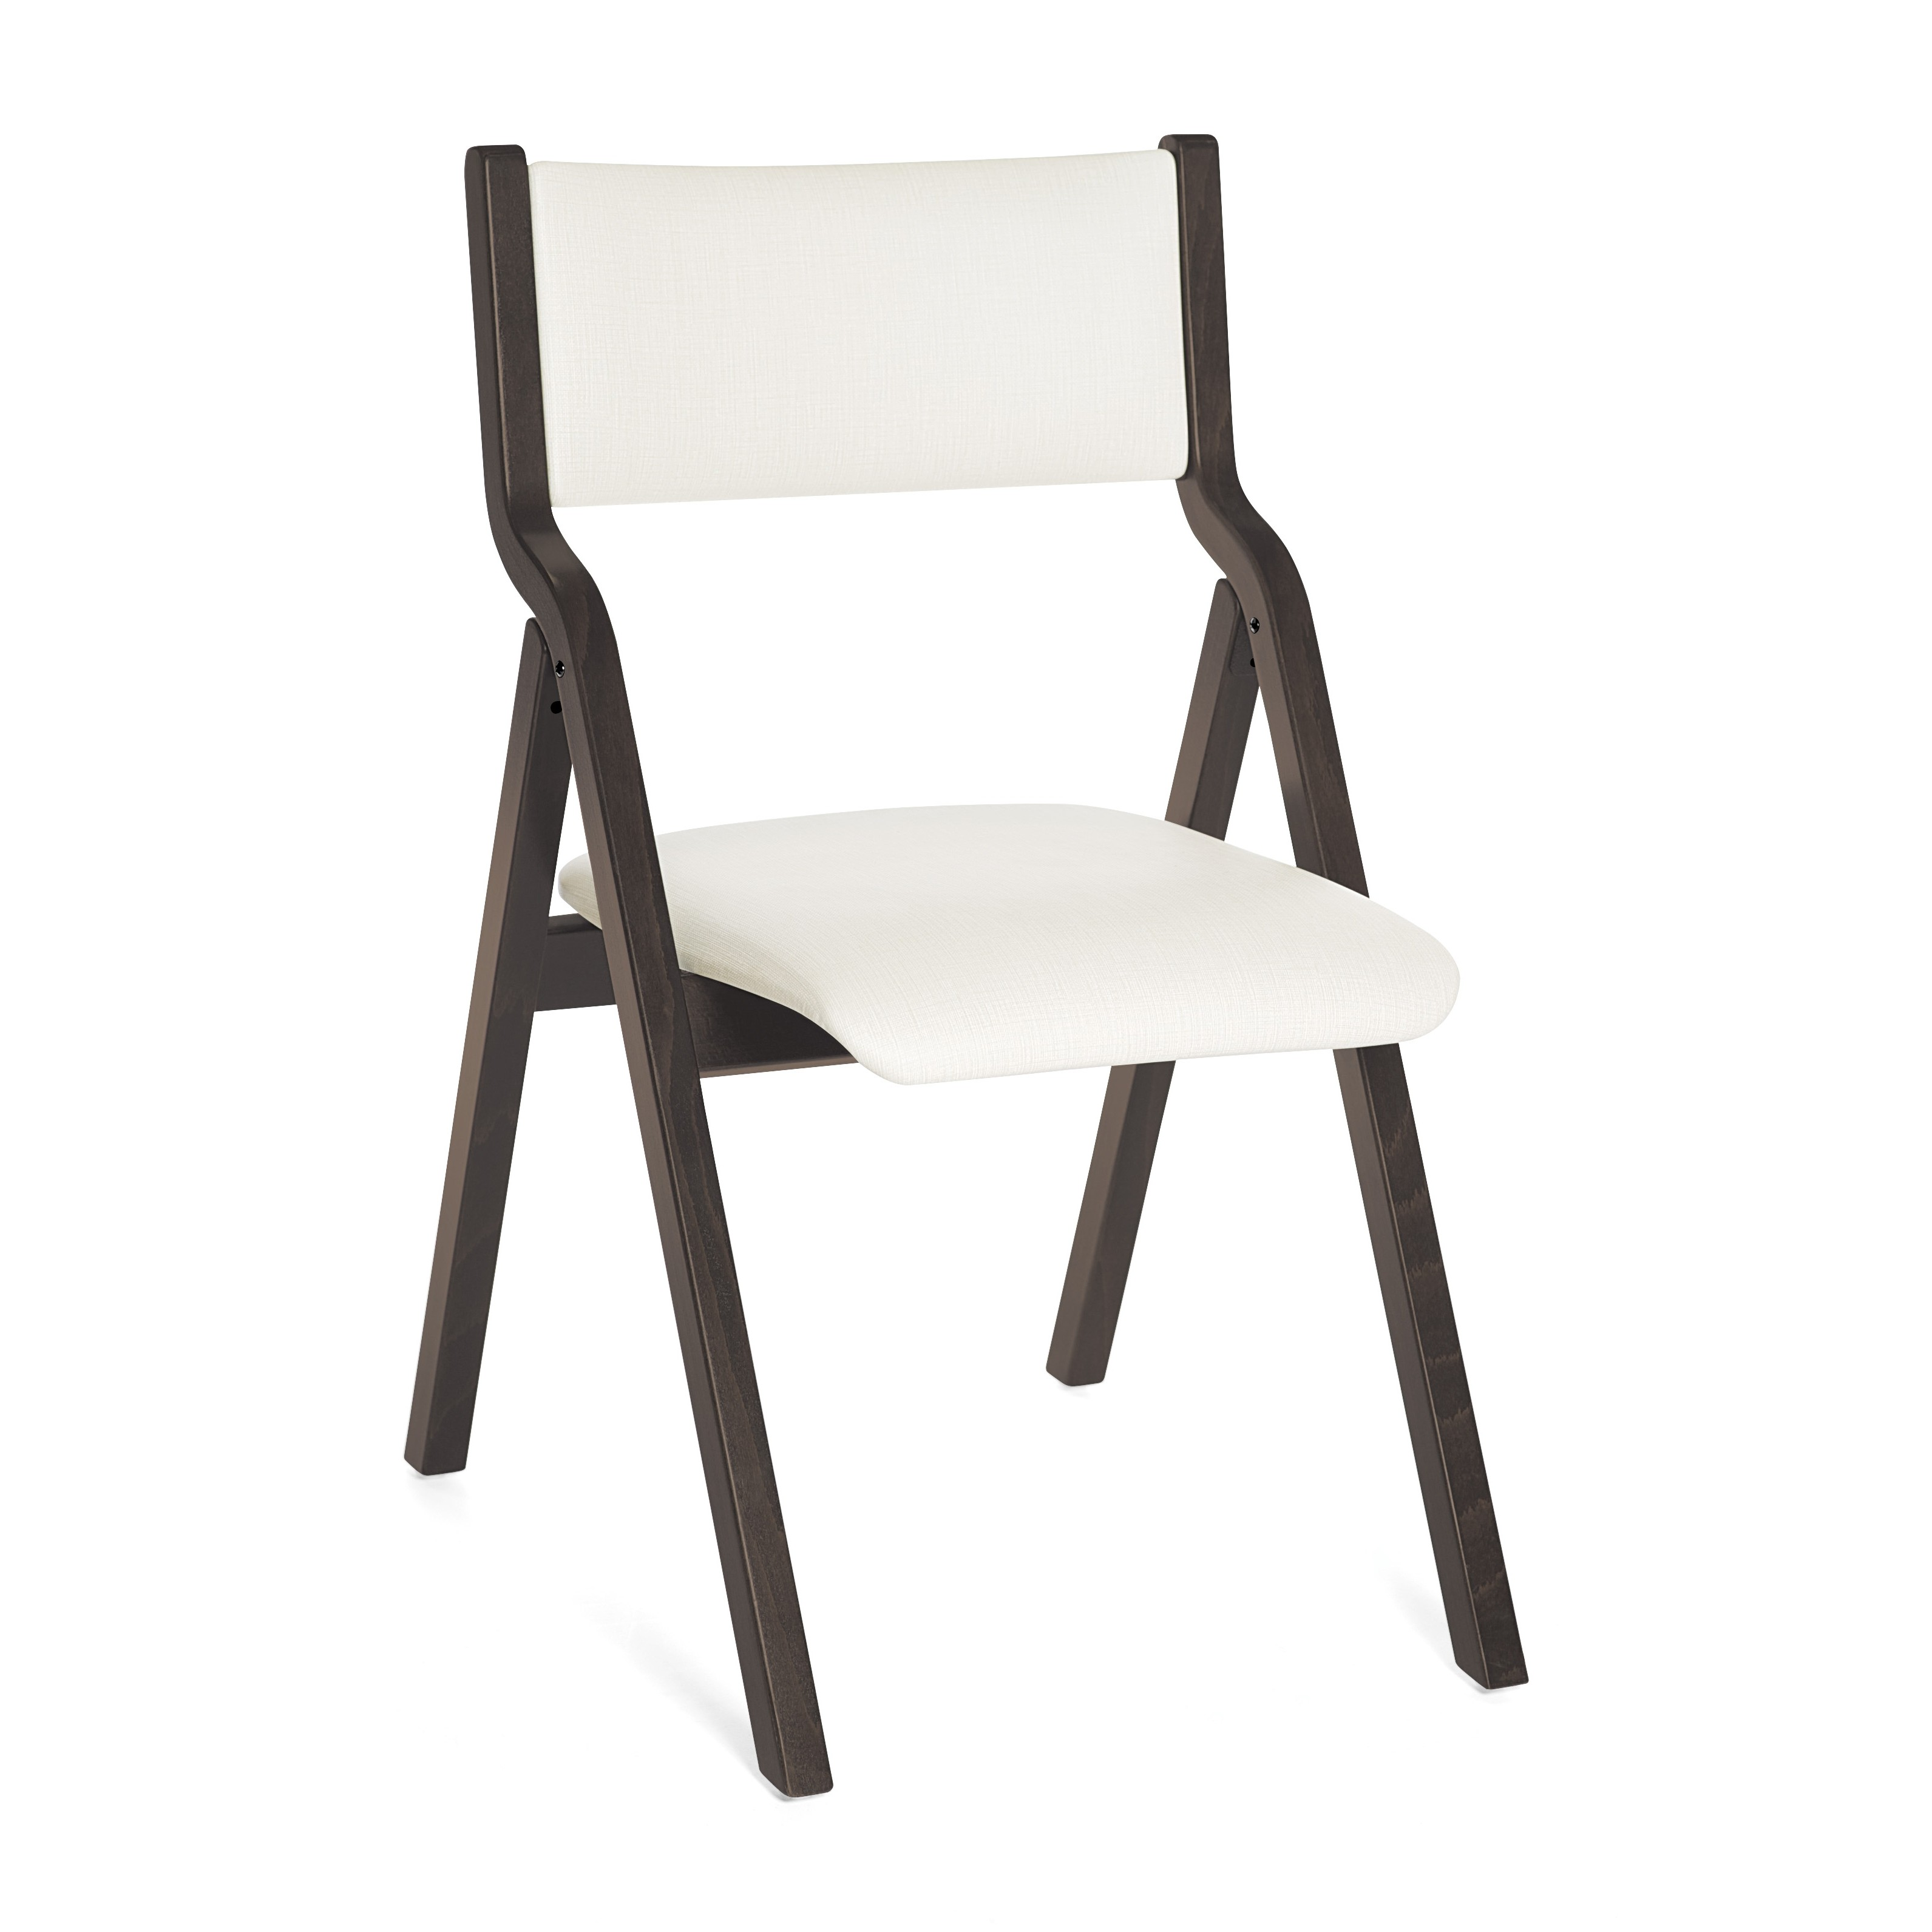 Stance Healthcare Kite Folding Chair